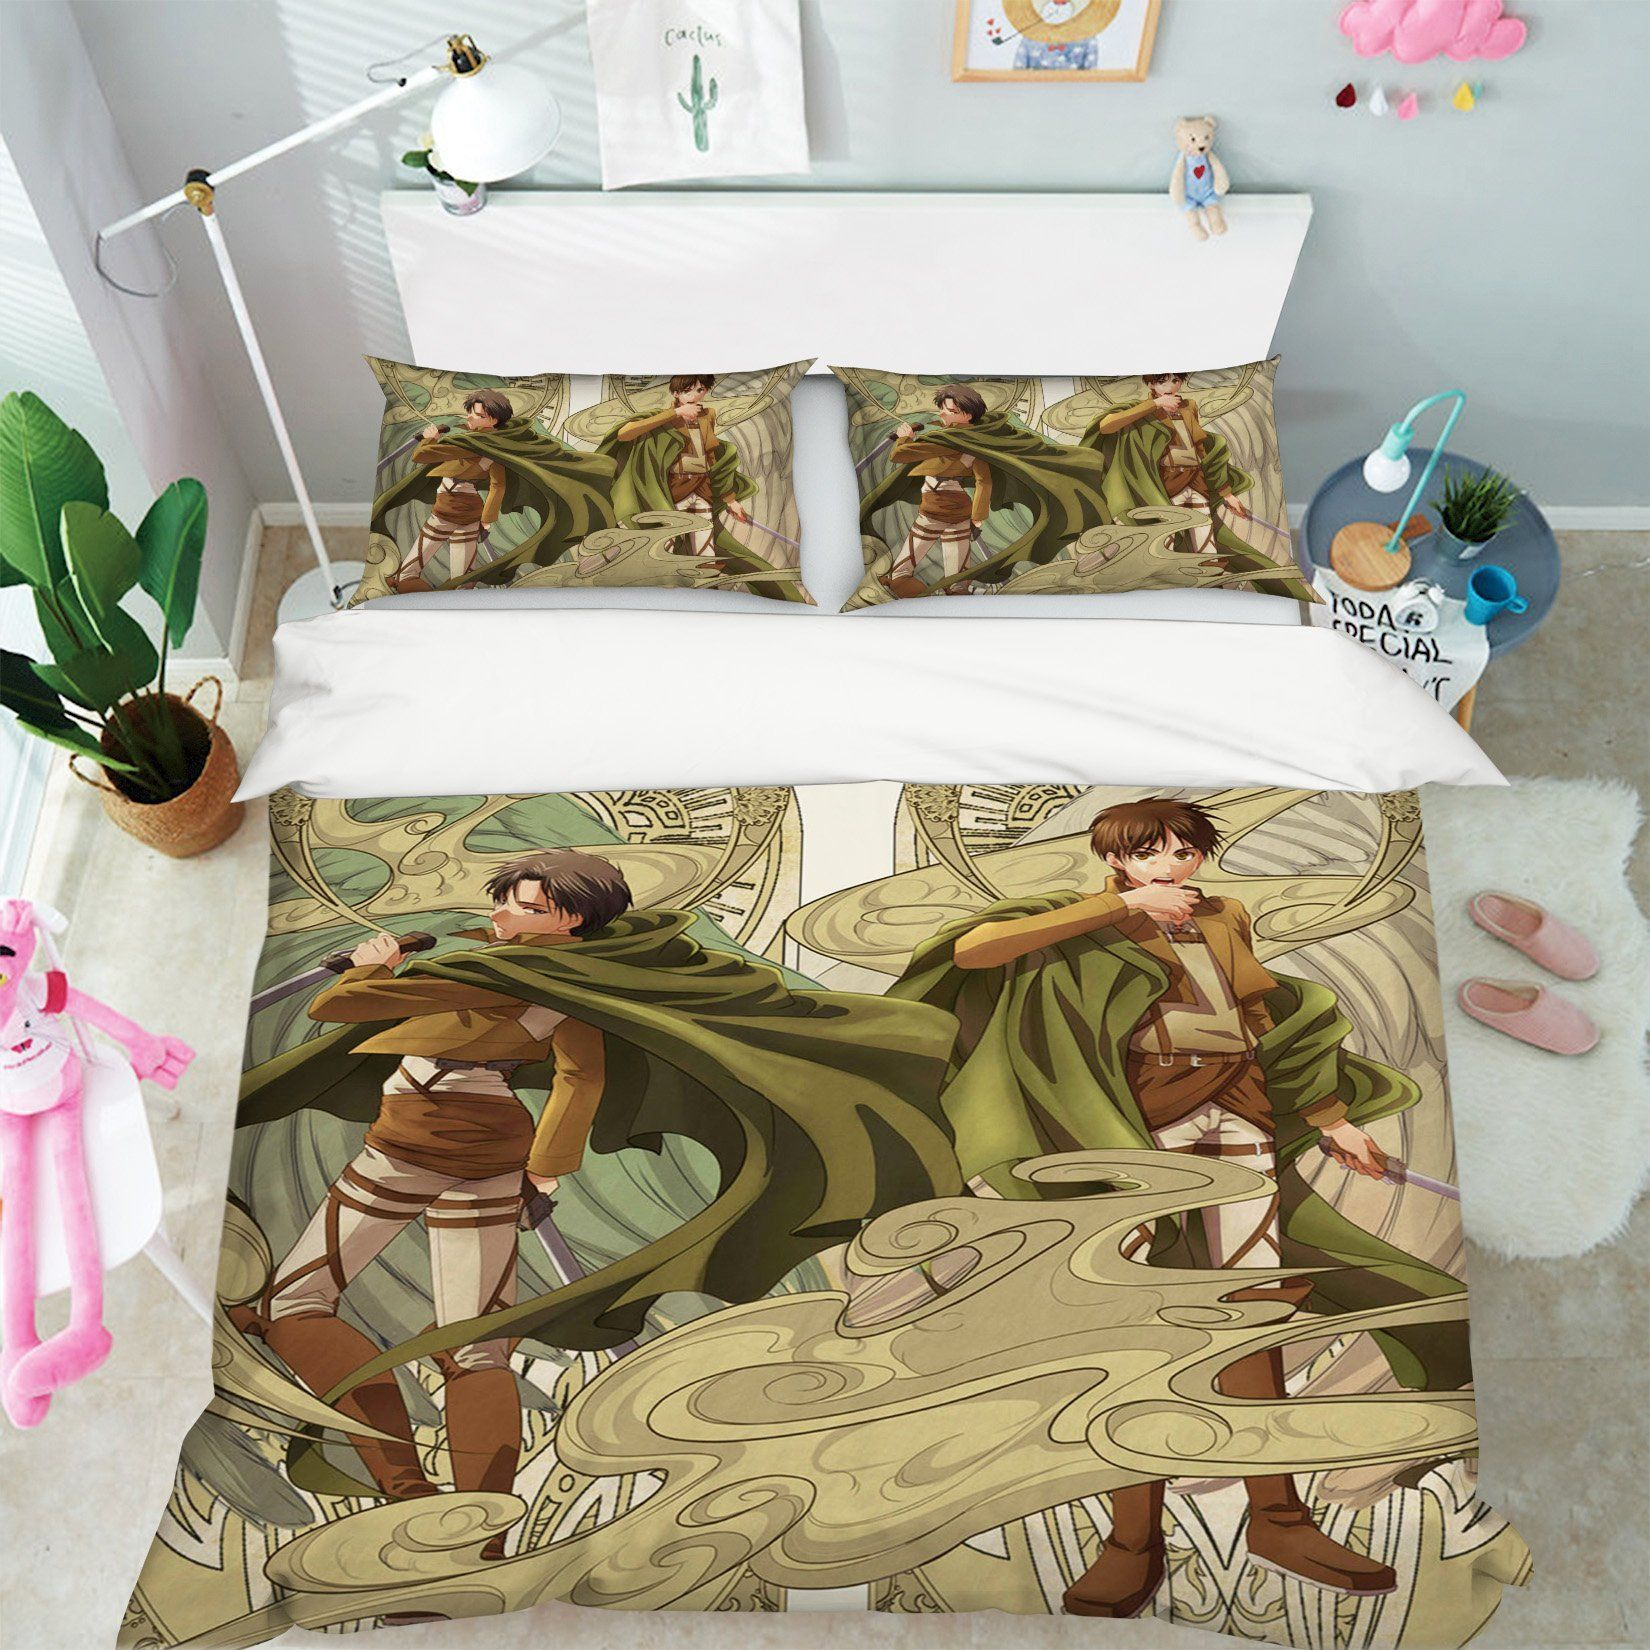 3D Attack On Titan 04 Anime Bed Pillowcases Quilt Quiet Covers AJ Creativity Home